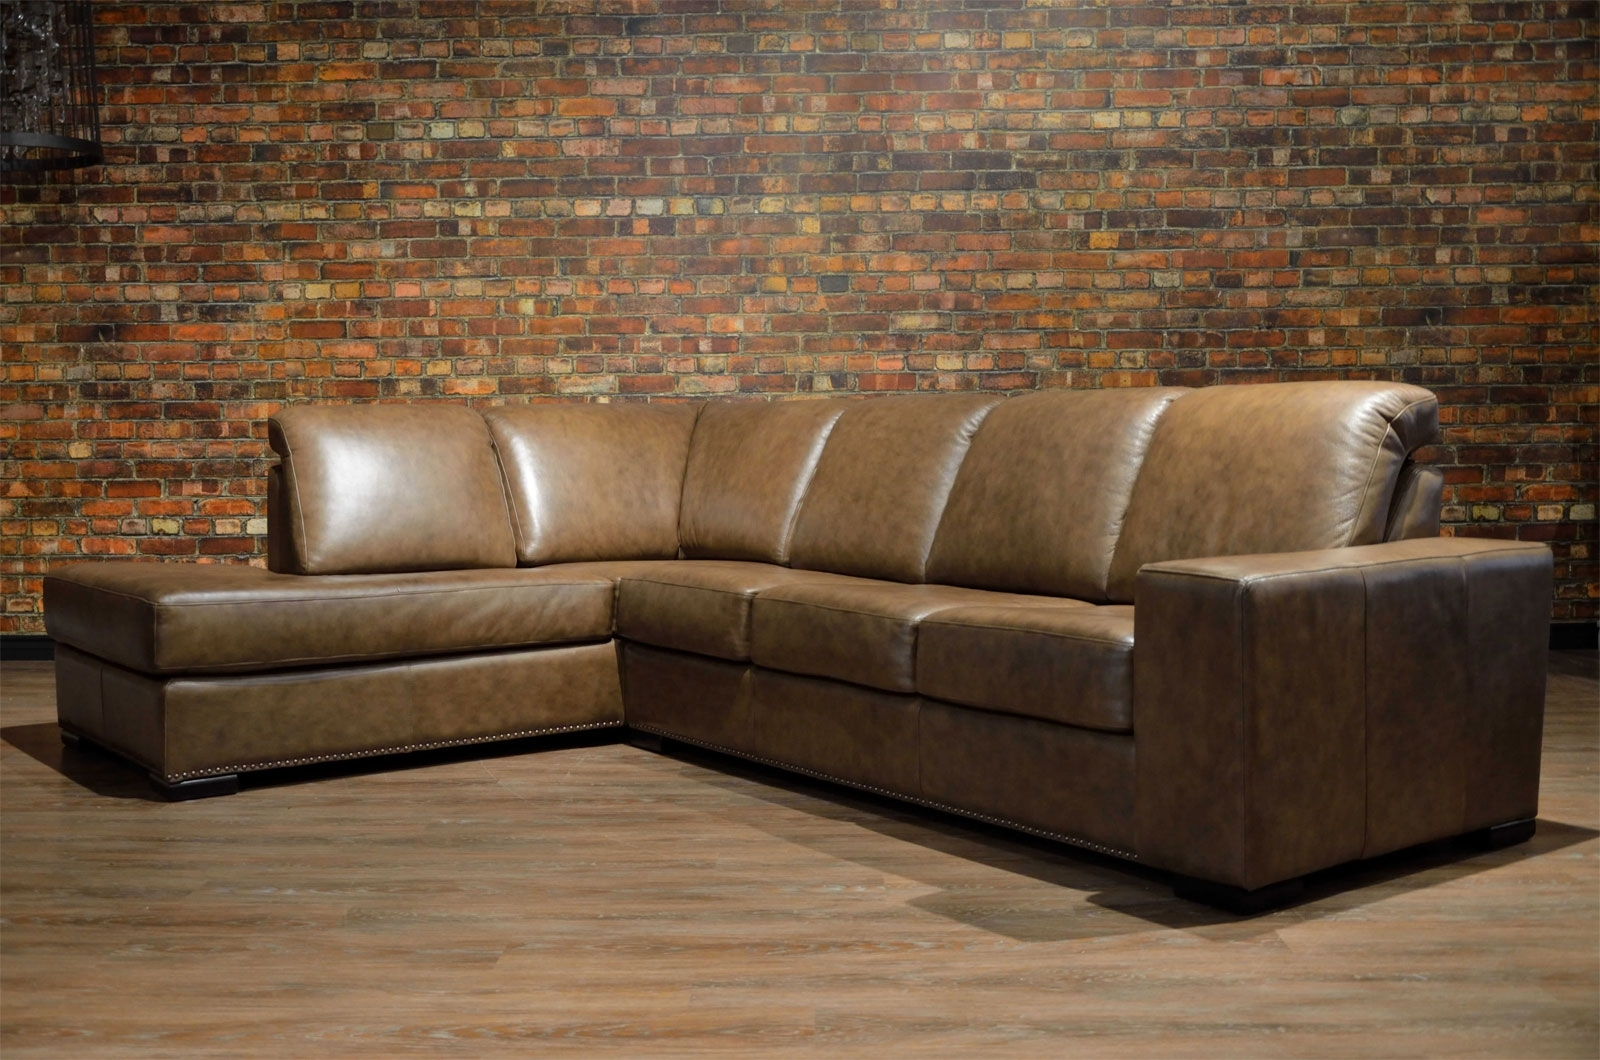 Preferred Leather Sofa (View 9 of 15)